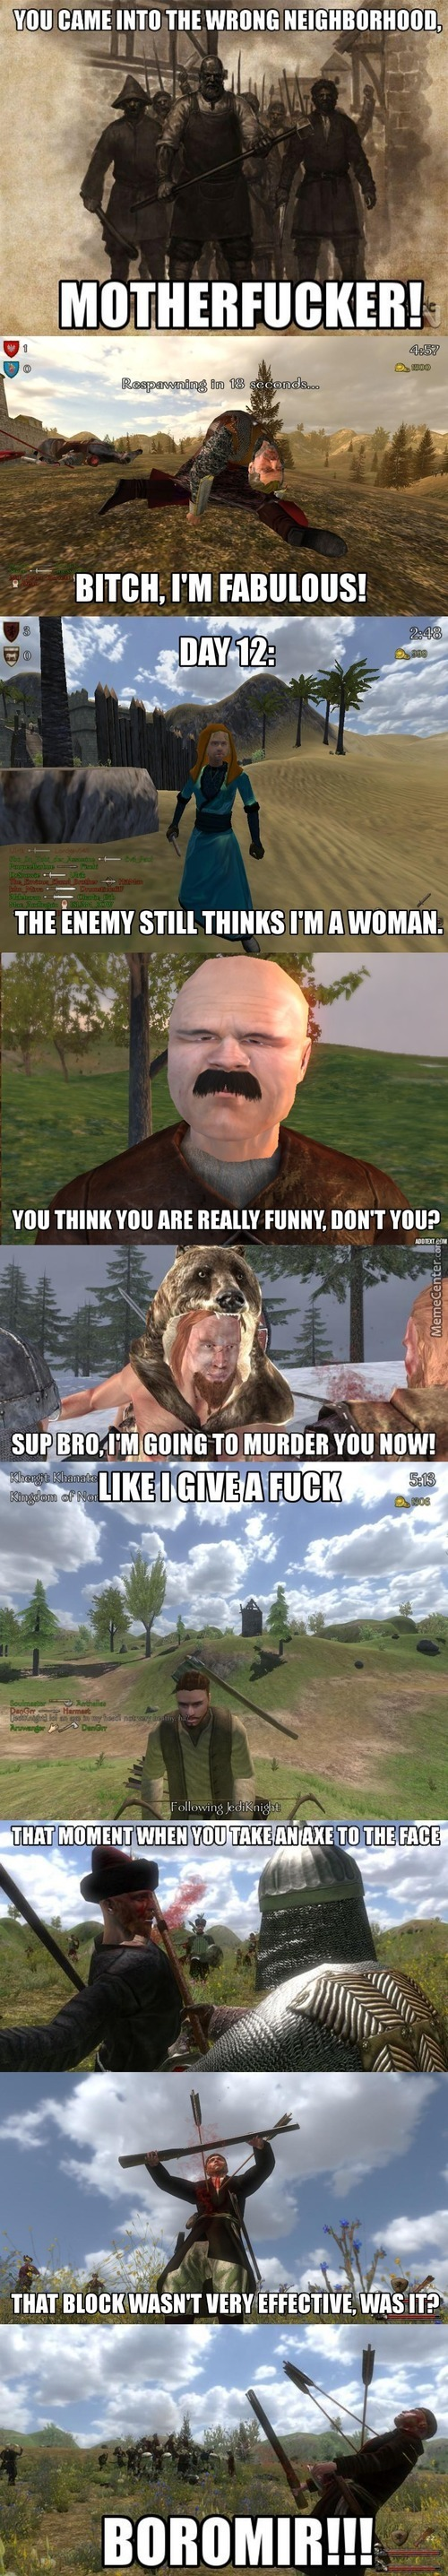 Oh Mount And Blade, One Of The Best Games In Existence